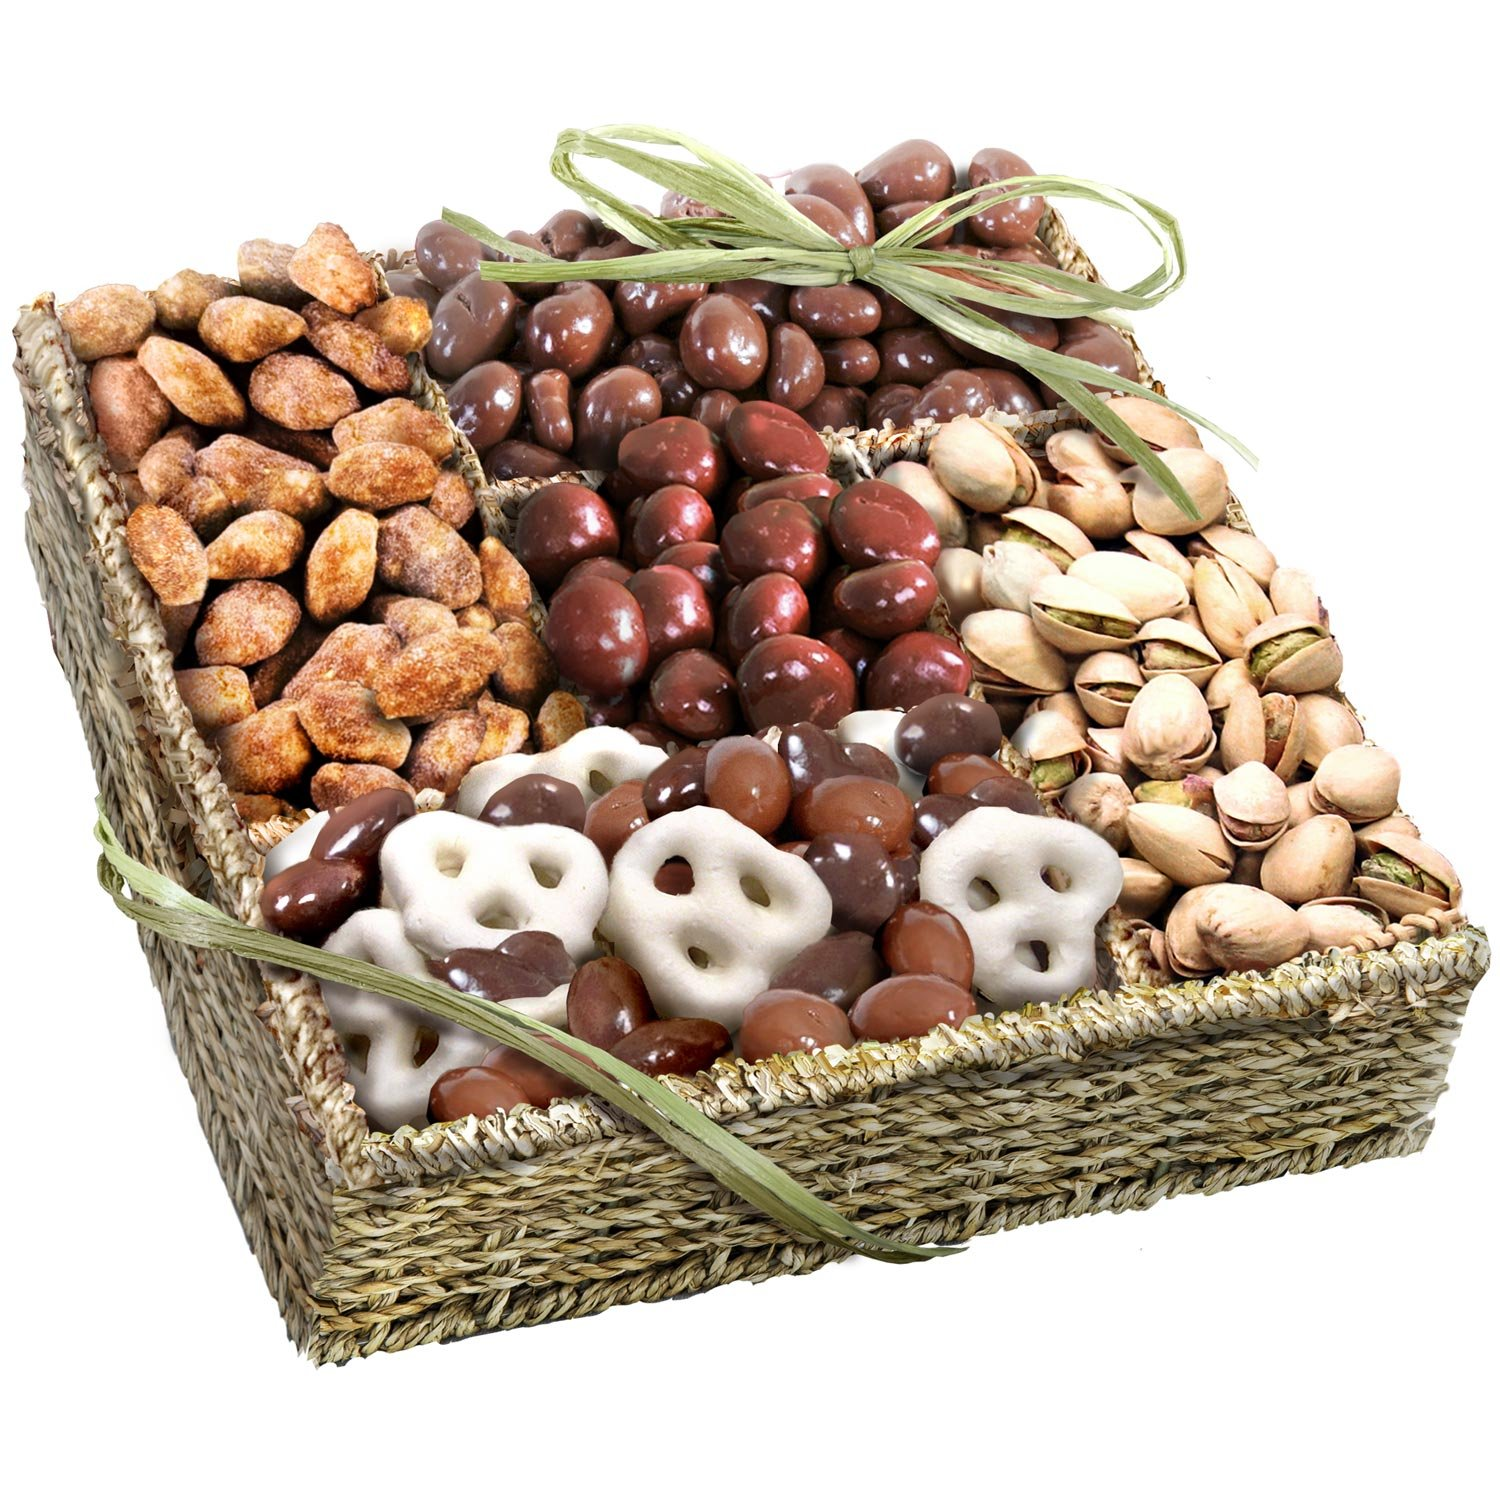 Amazon.com : Mendocino Organic Chocolate and Nuts Gift Basket ...